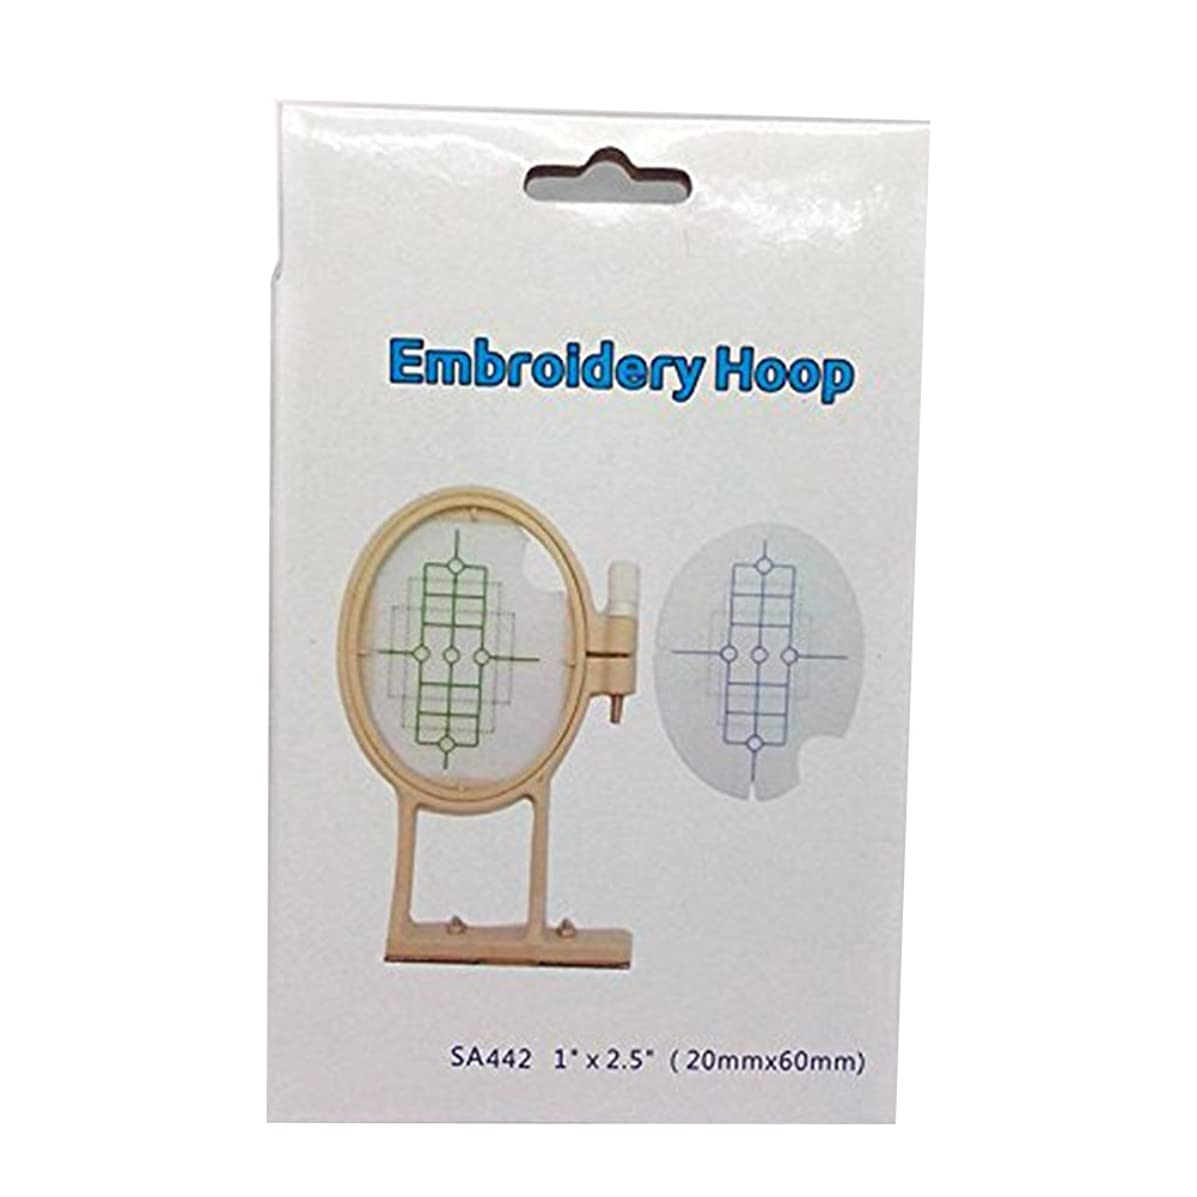 HONEYSEW Small Embroidery Hoop for Brother PE770 PE700 PE700II Machine - Replaces SA442